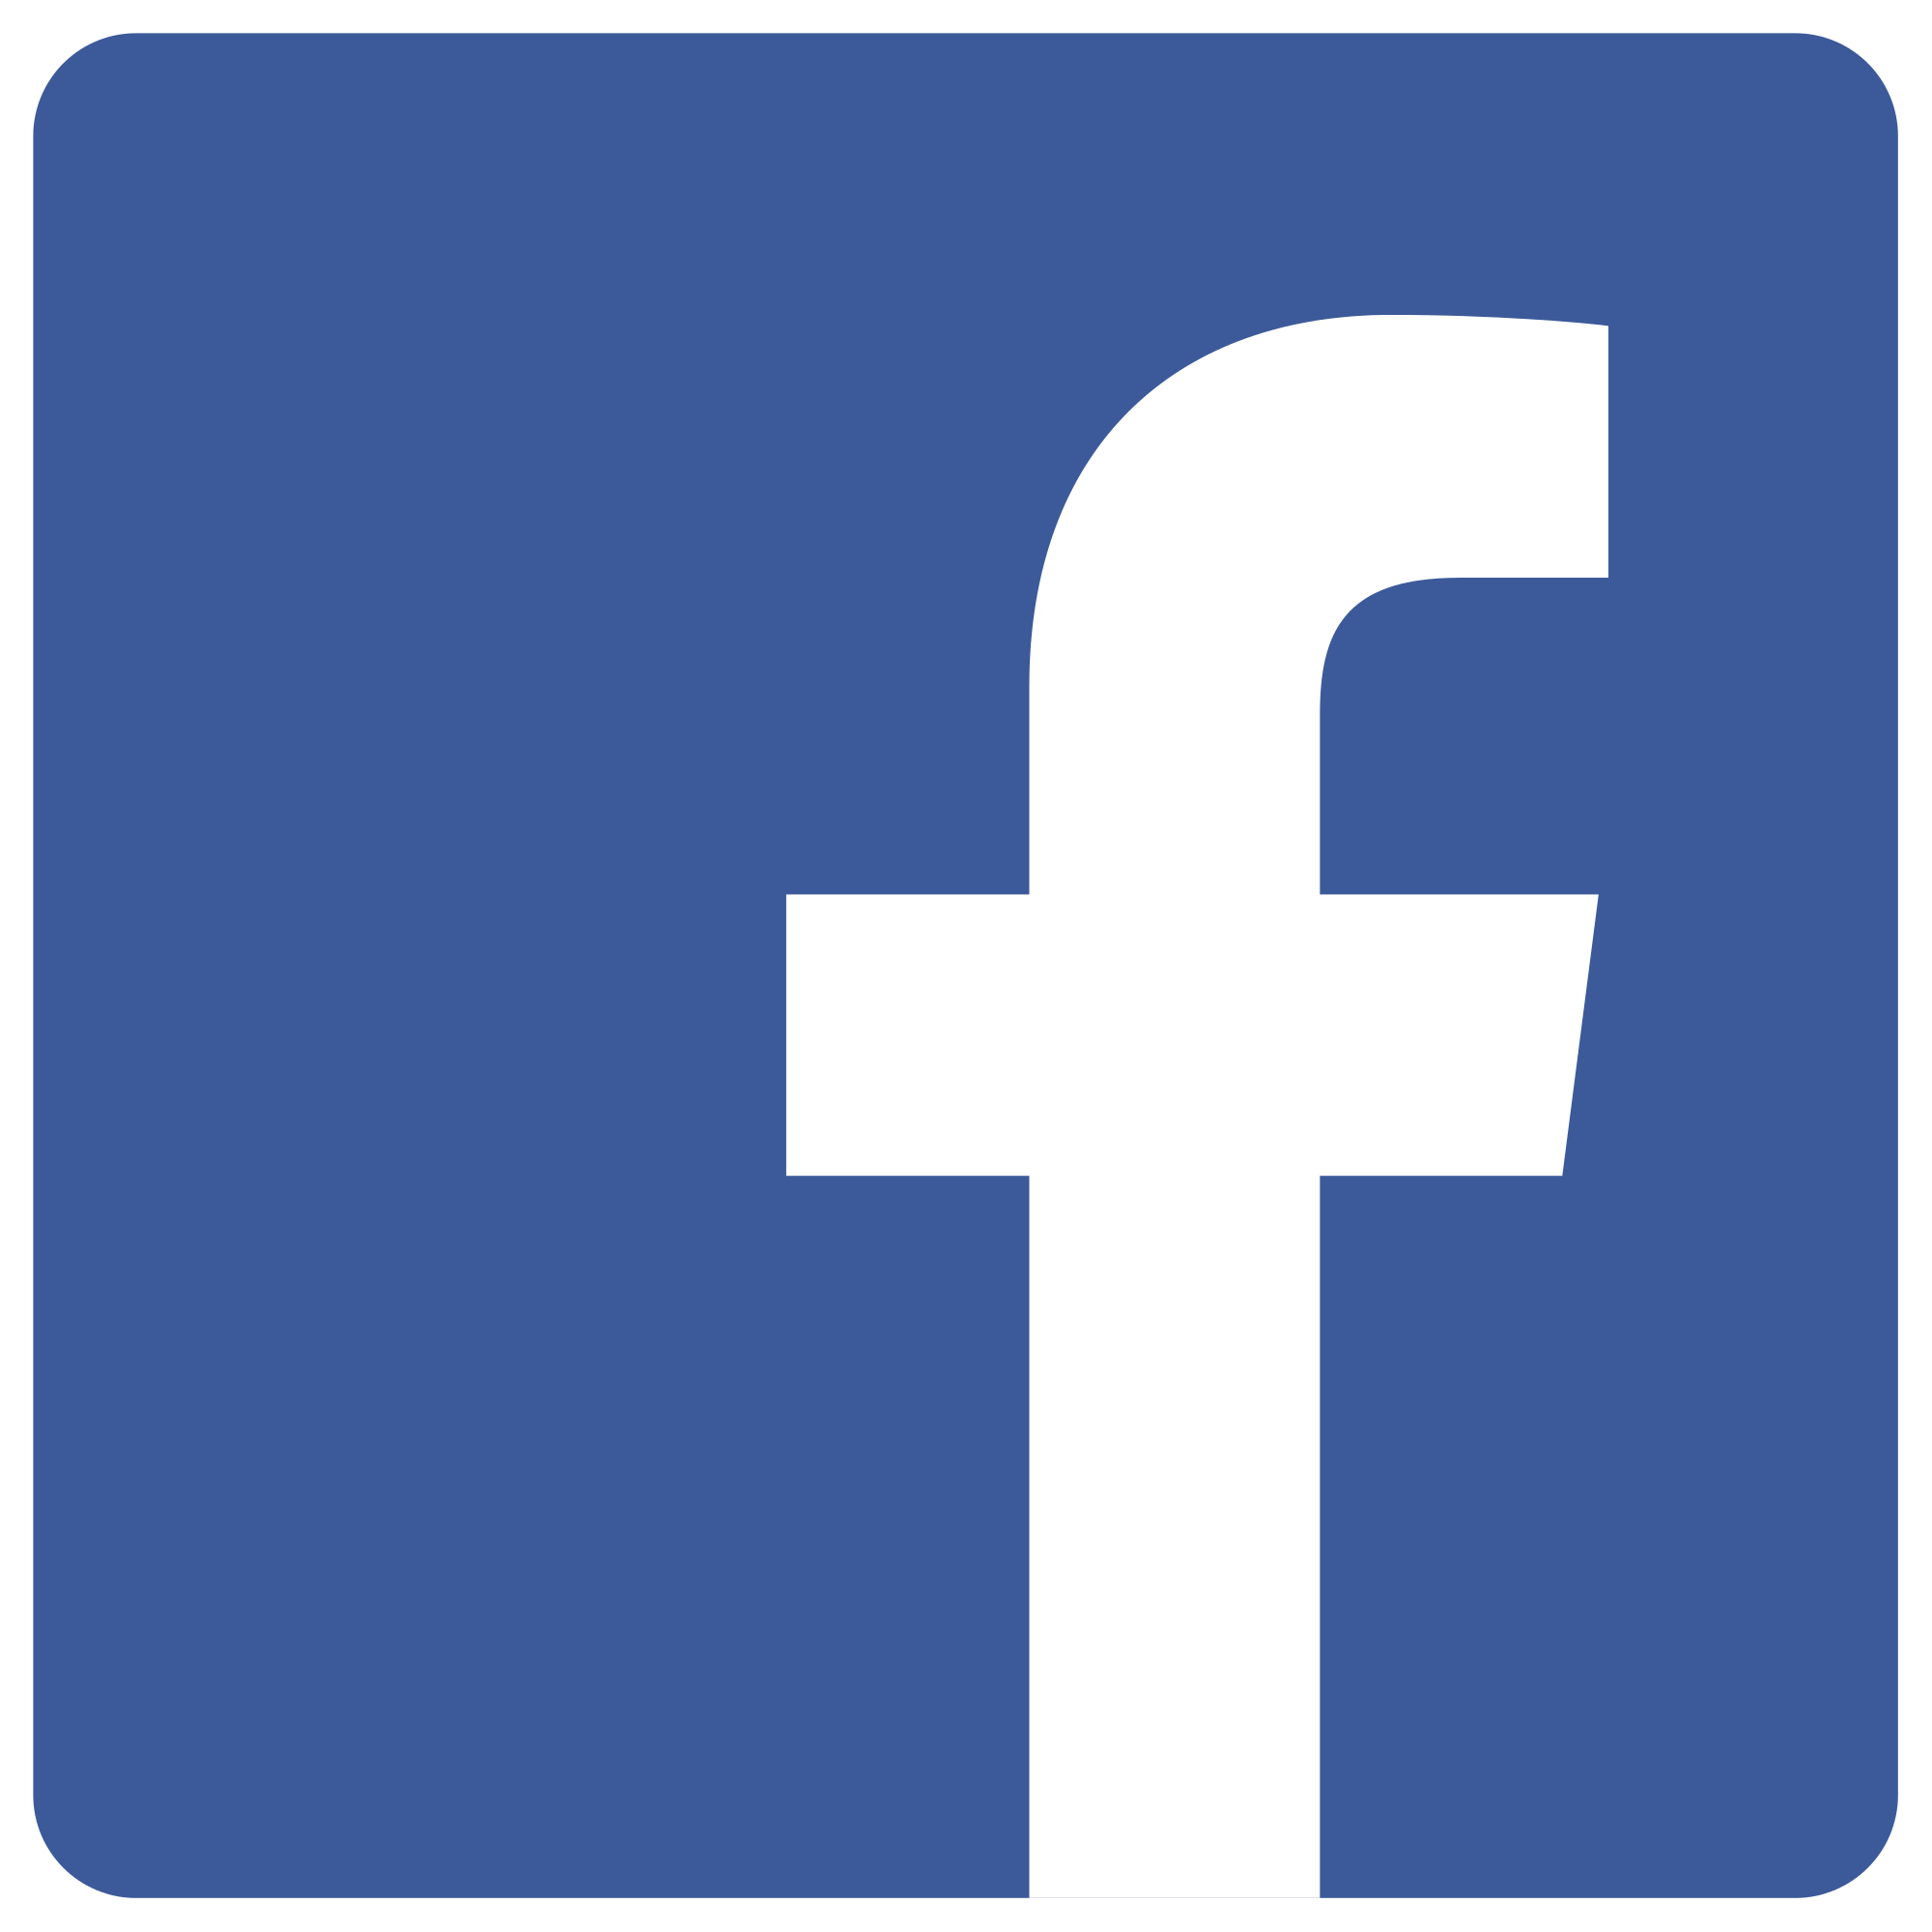 Facebook For Business Marketing Tips